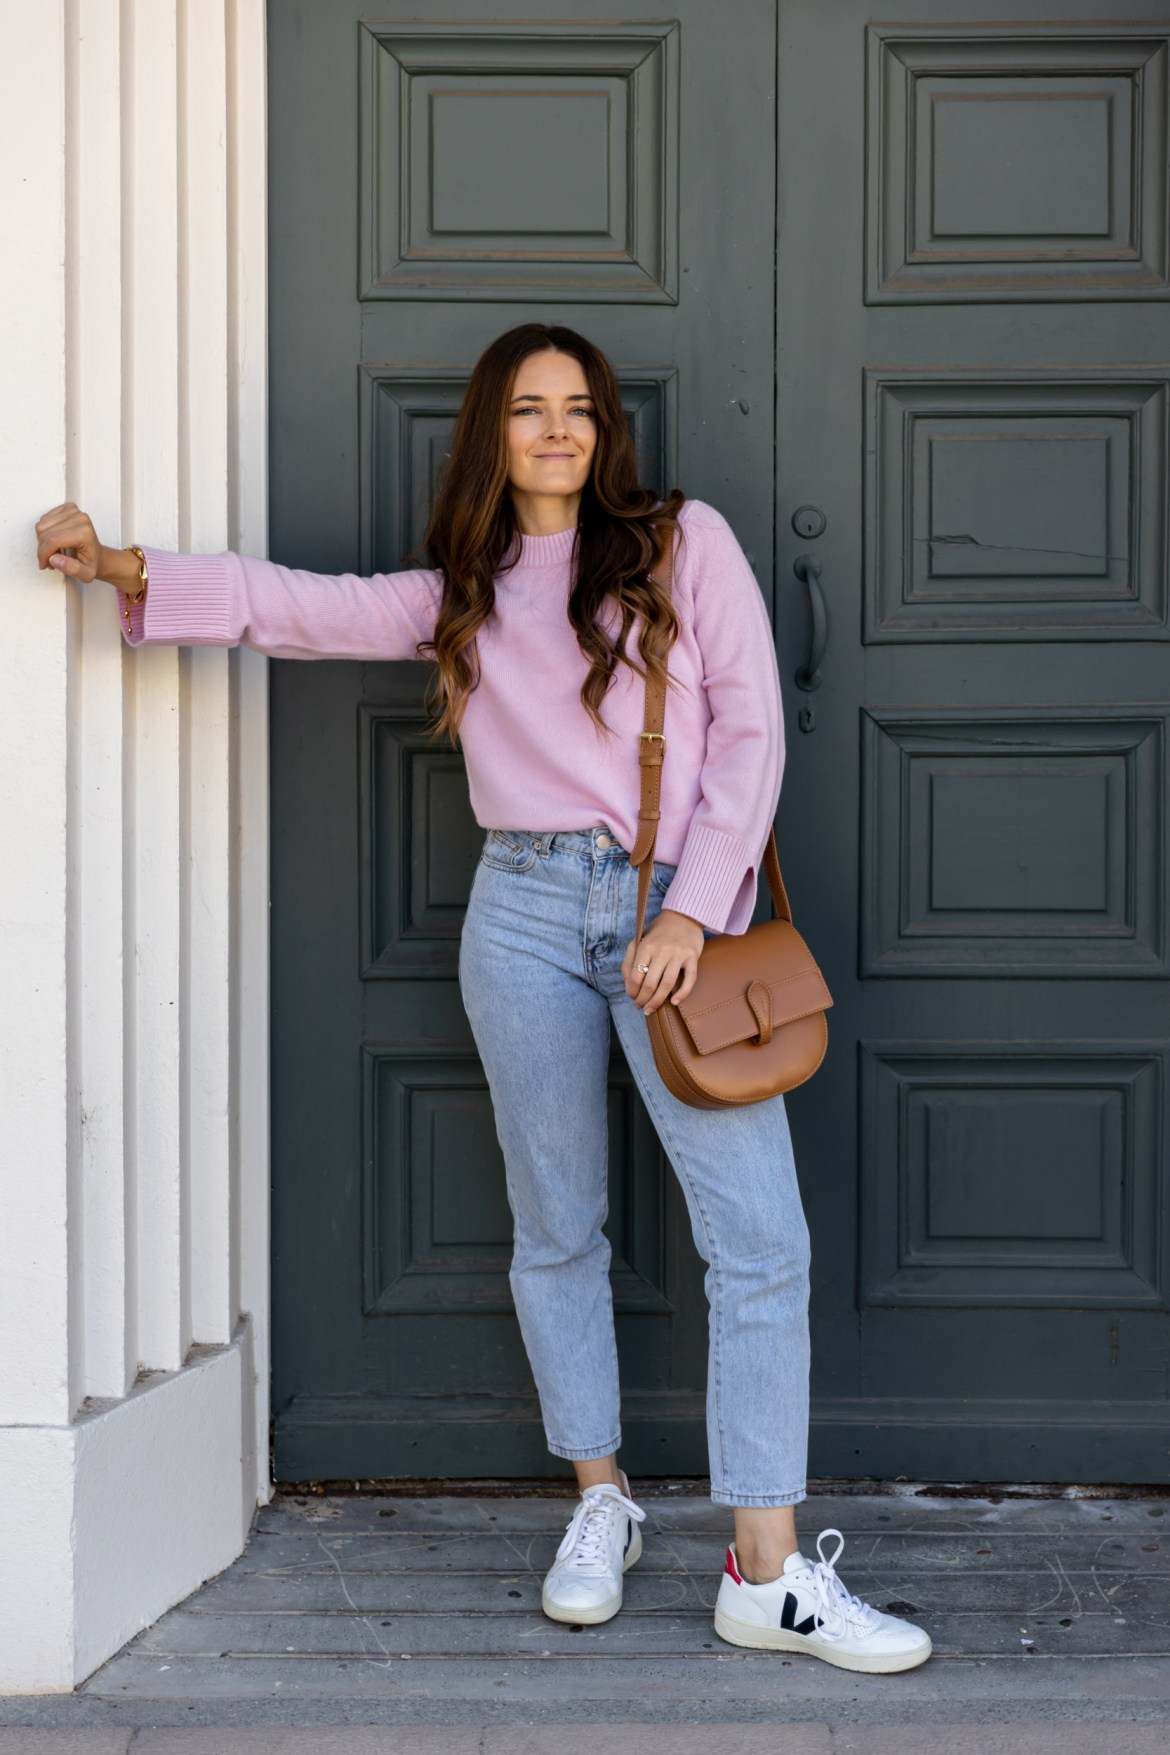 high waist jeans and white sneakers outfit idea